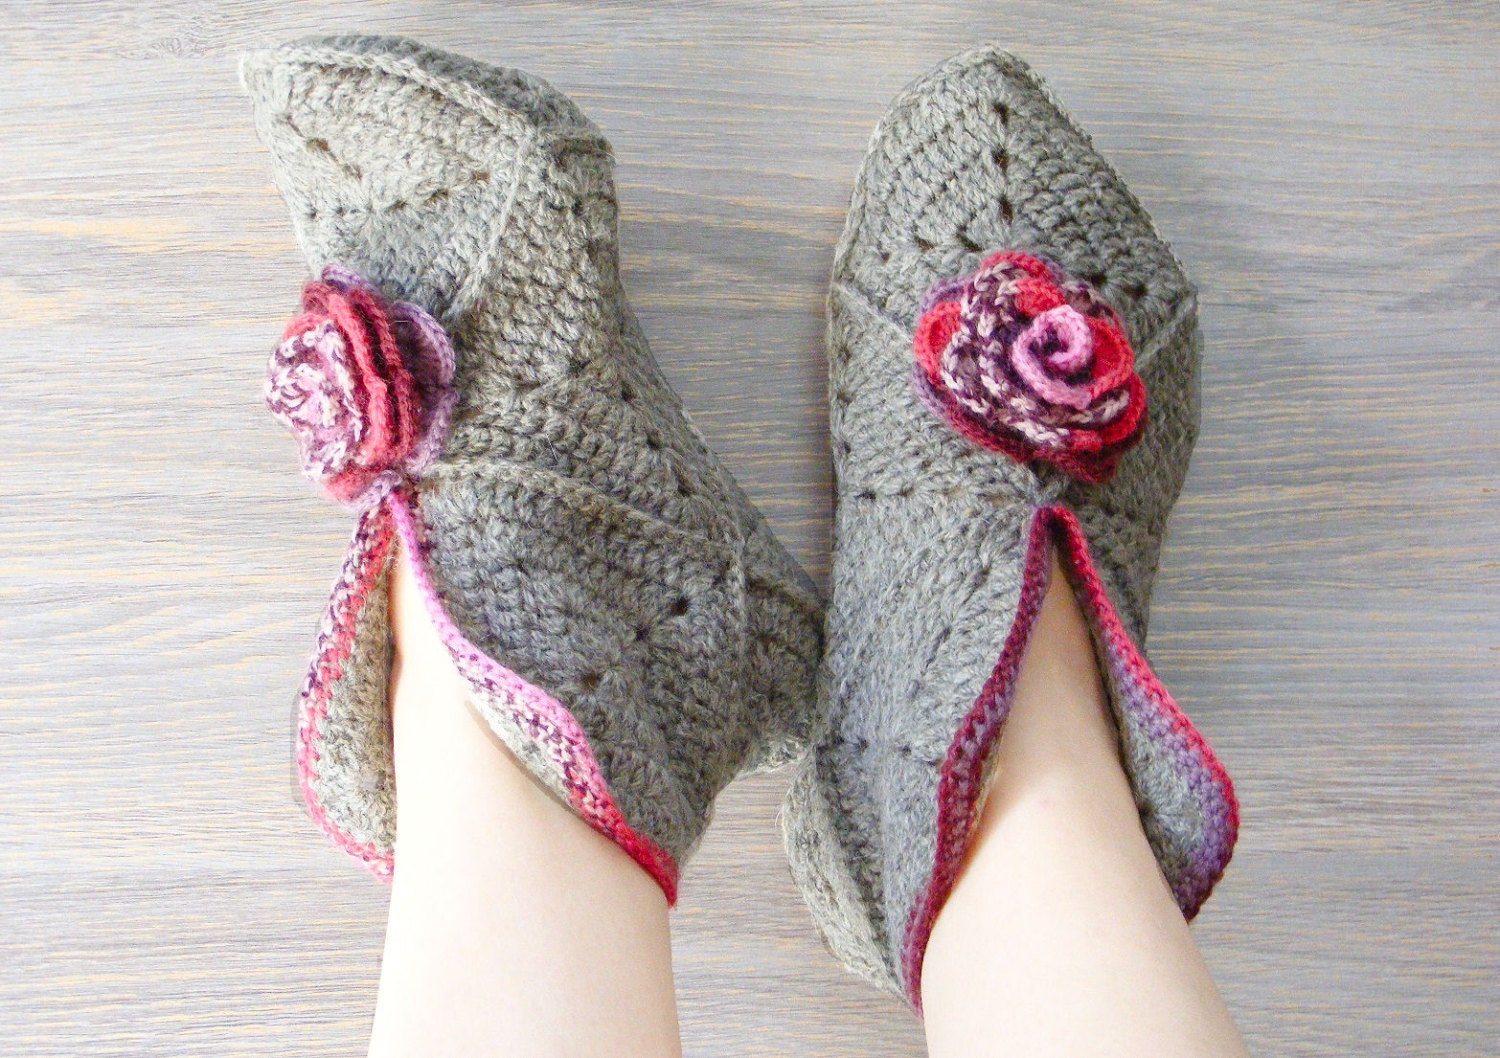 Crochet Granny Square Slipper Pattern : Womens slippers wool crochet slippers granny square